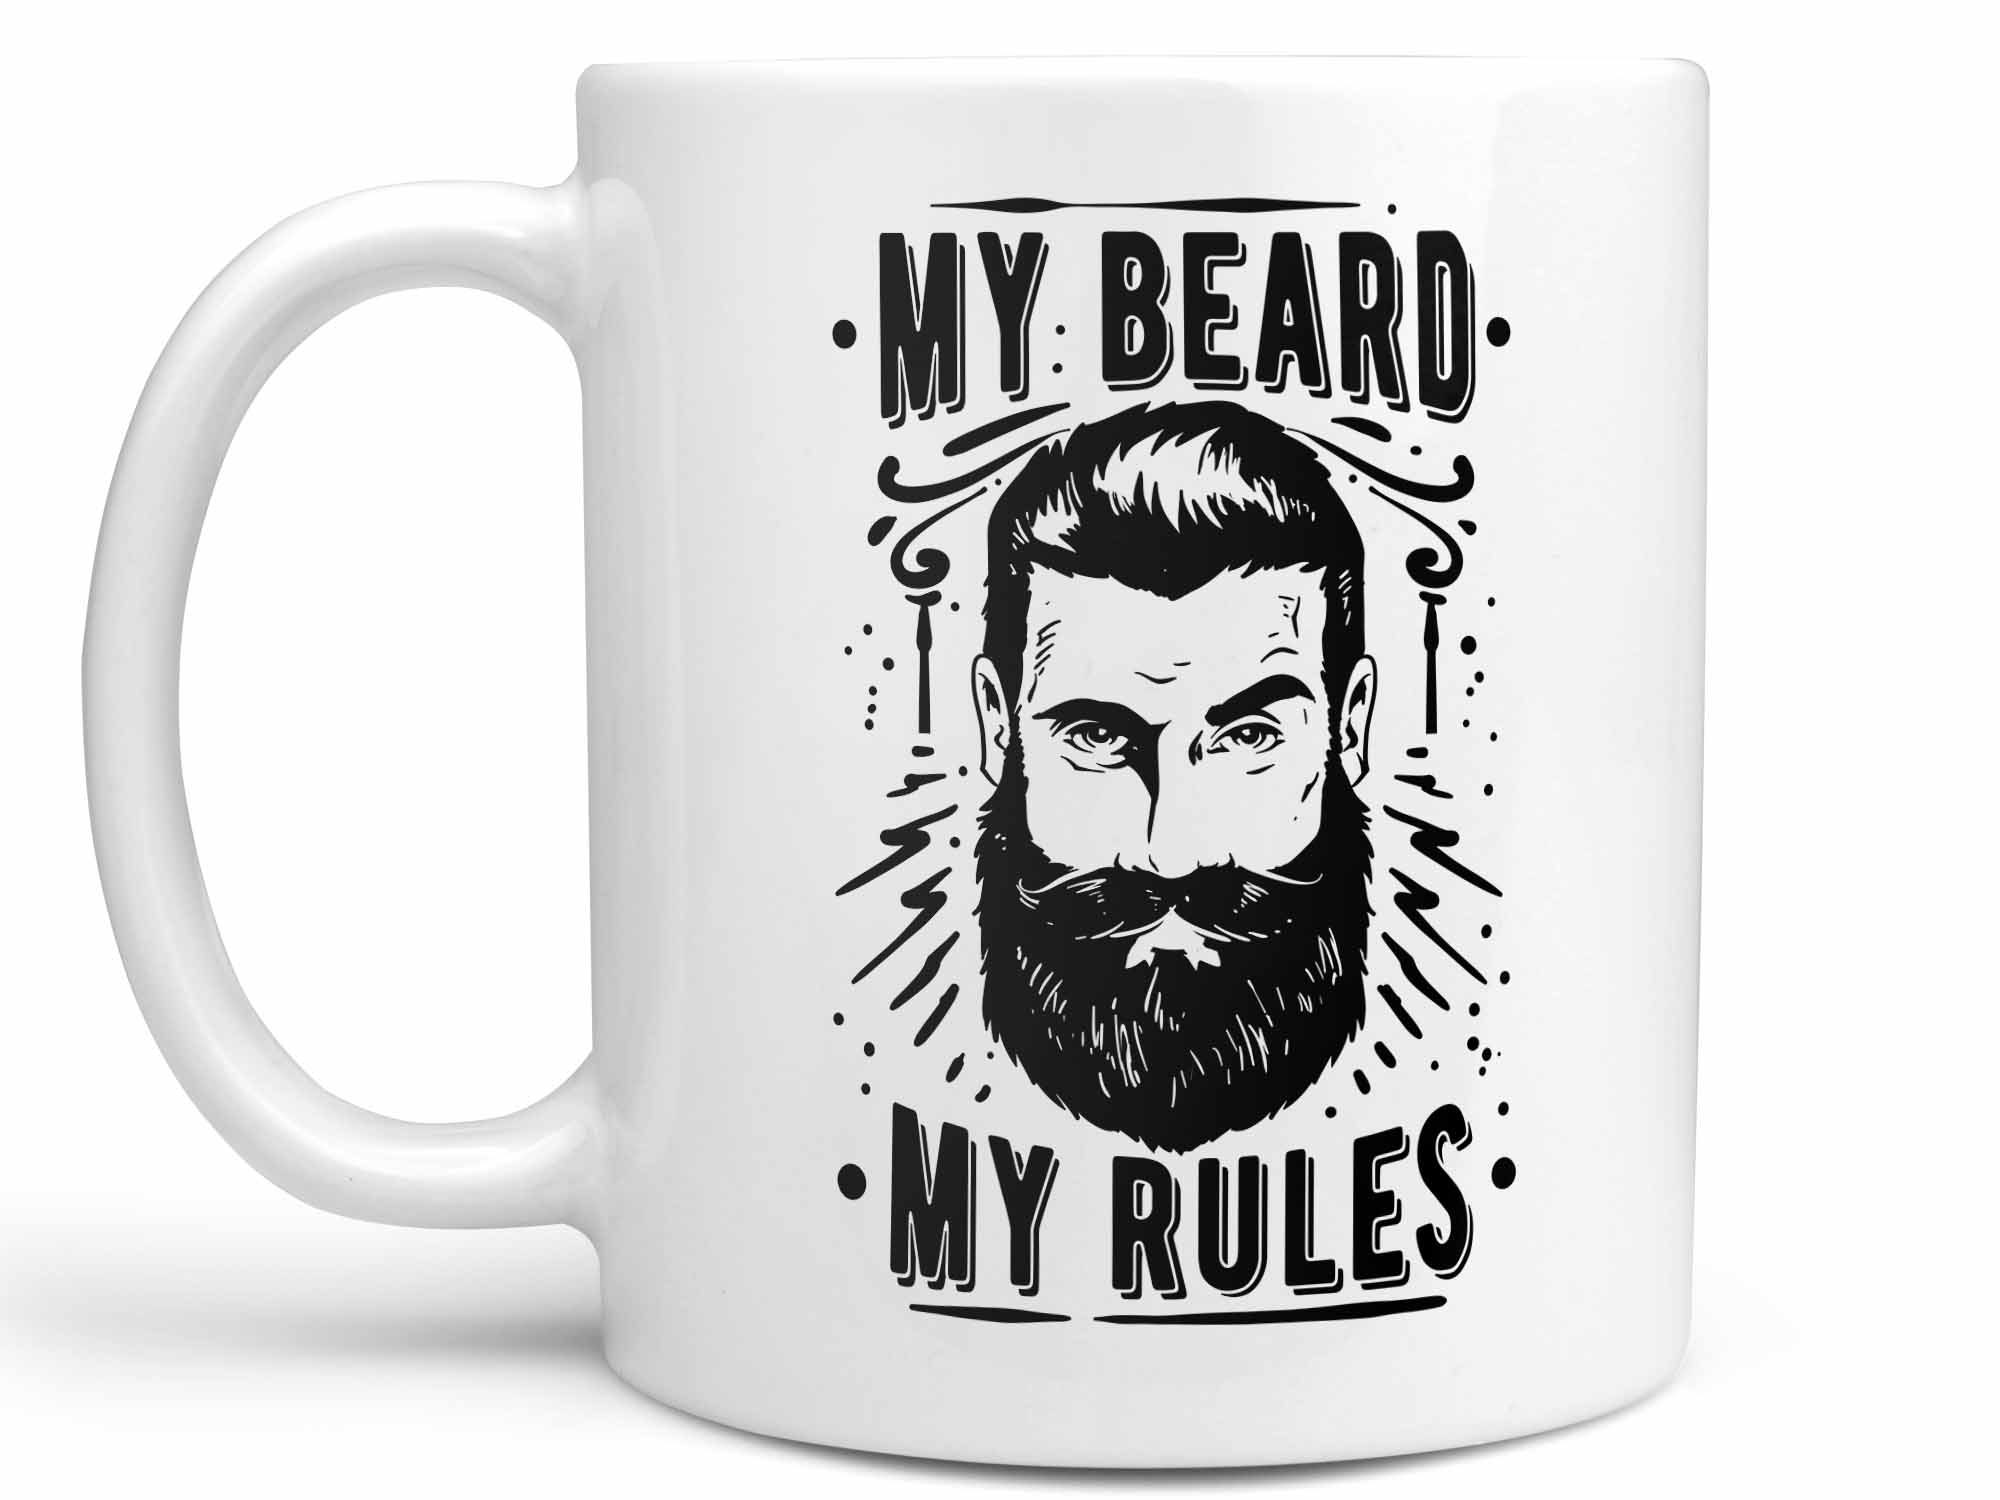 My Beard My Rules Coffee Mug,Coffee Mugs Never Lie,Coffee Mug